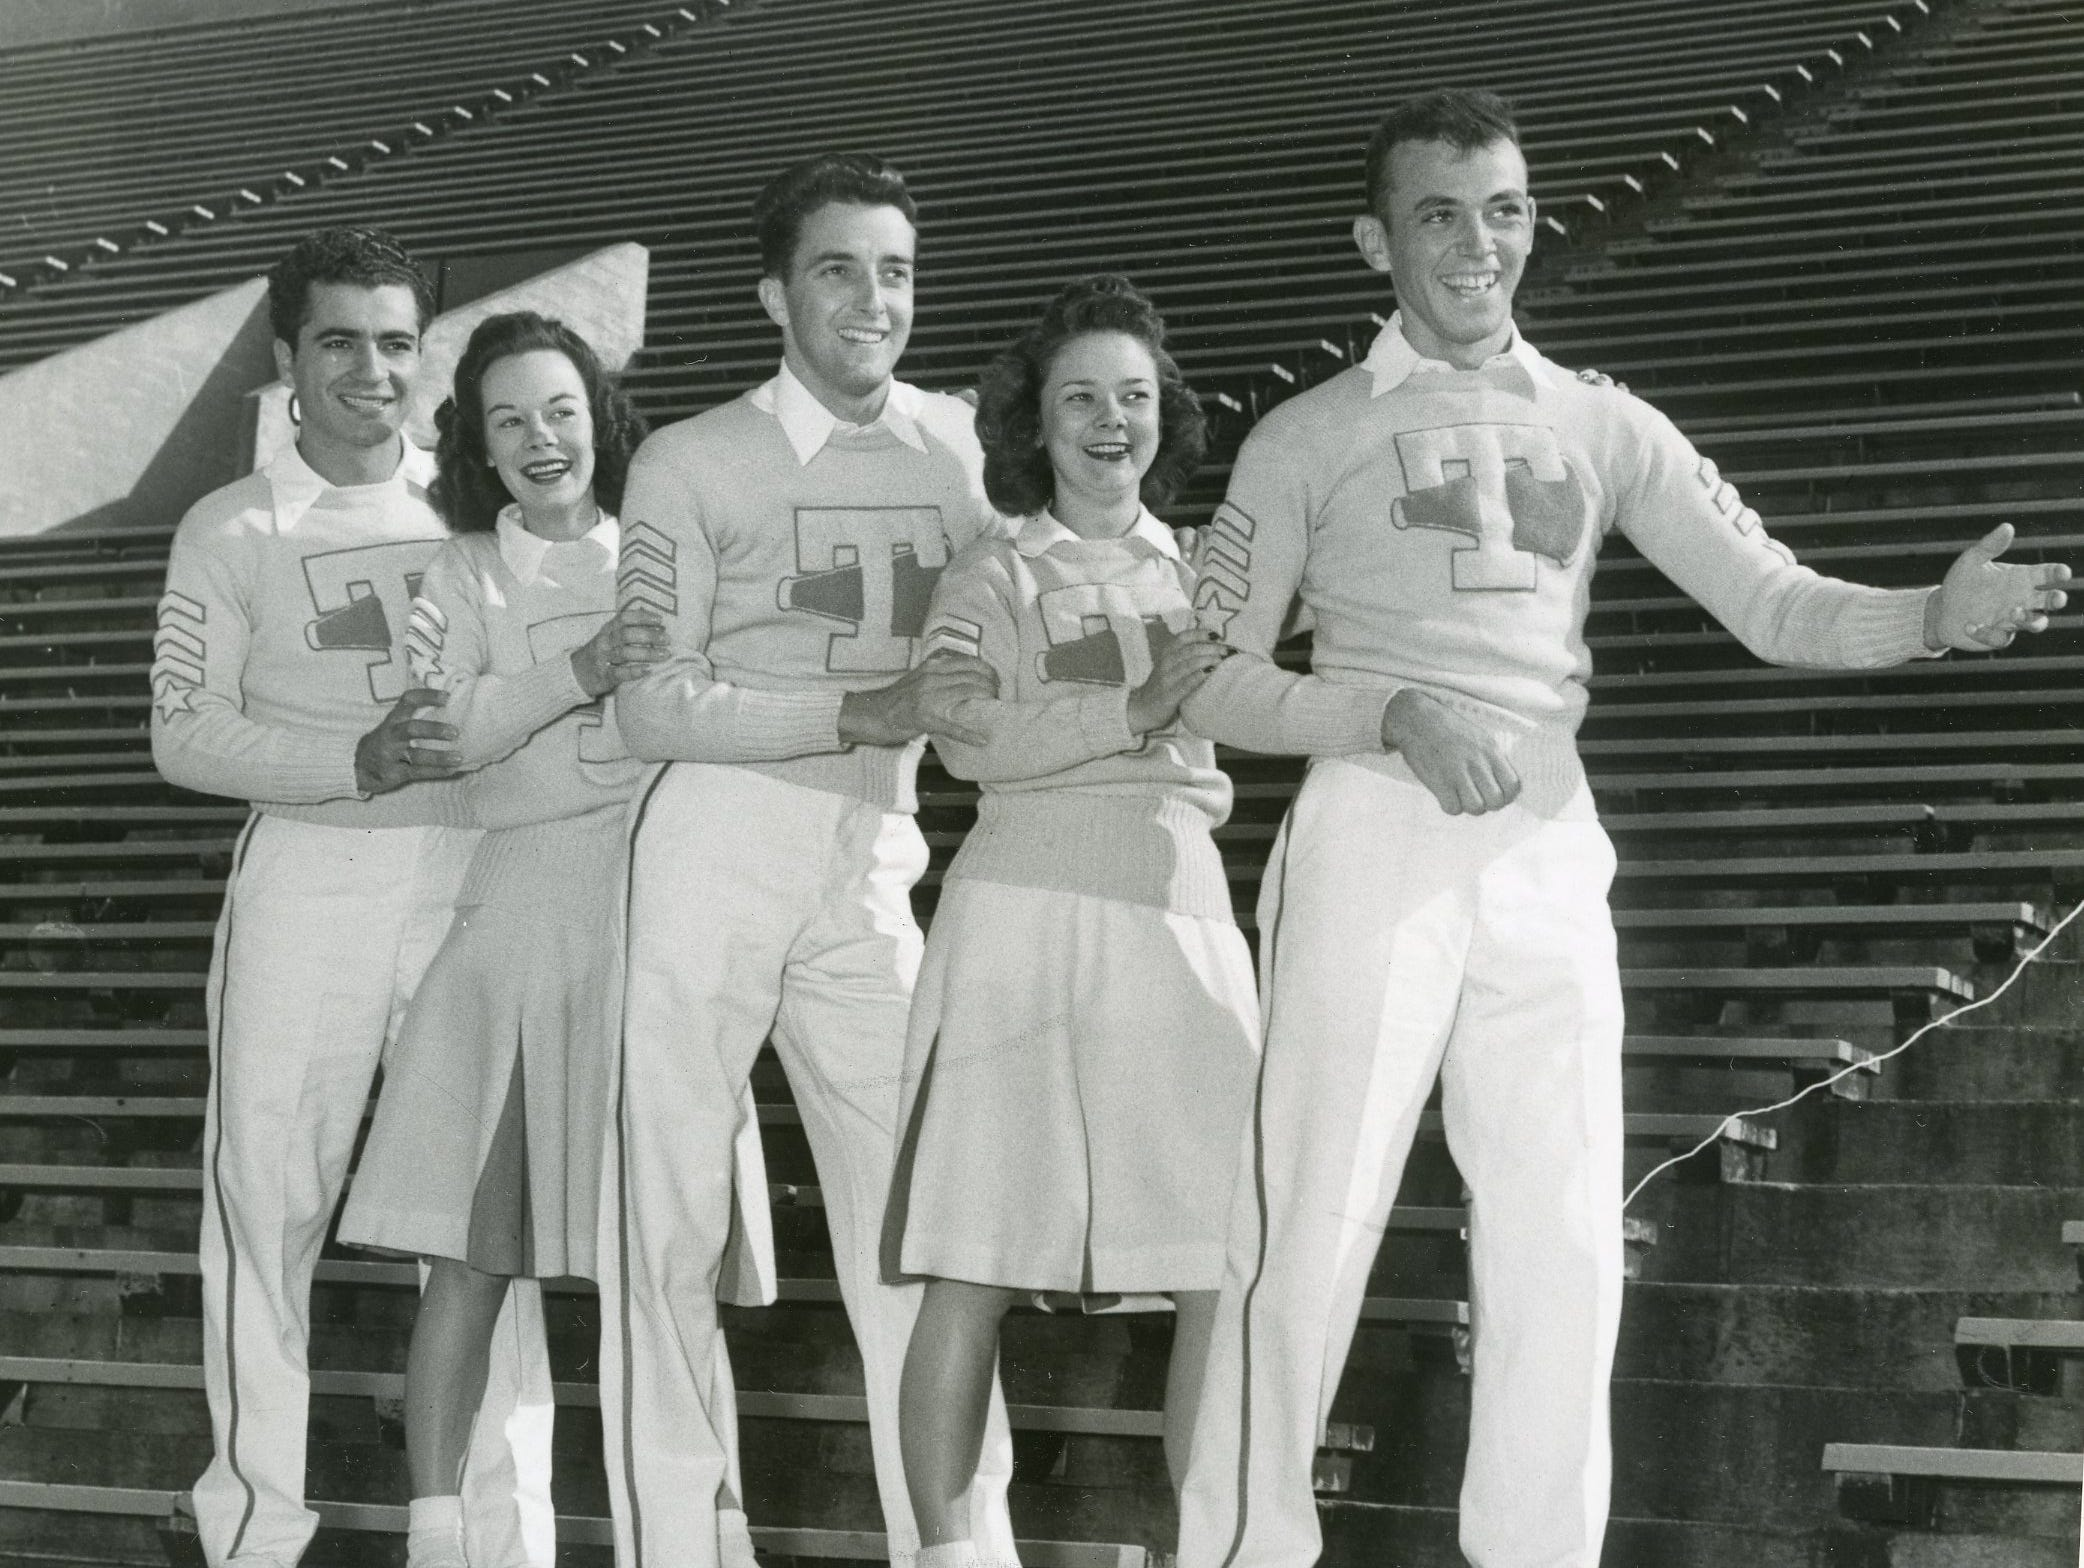 Preparing for the Tech/Tenn football game in Atlanta, September, 1947 are Steve Cakmes, Sis McColloch, Tandy Wilson, Ann Gordon Dempster and Joe Roberts.